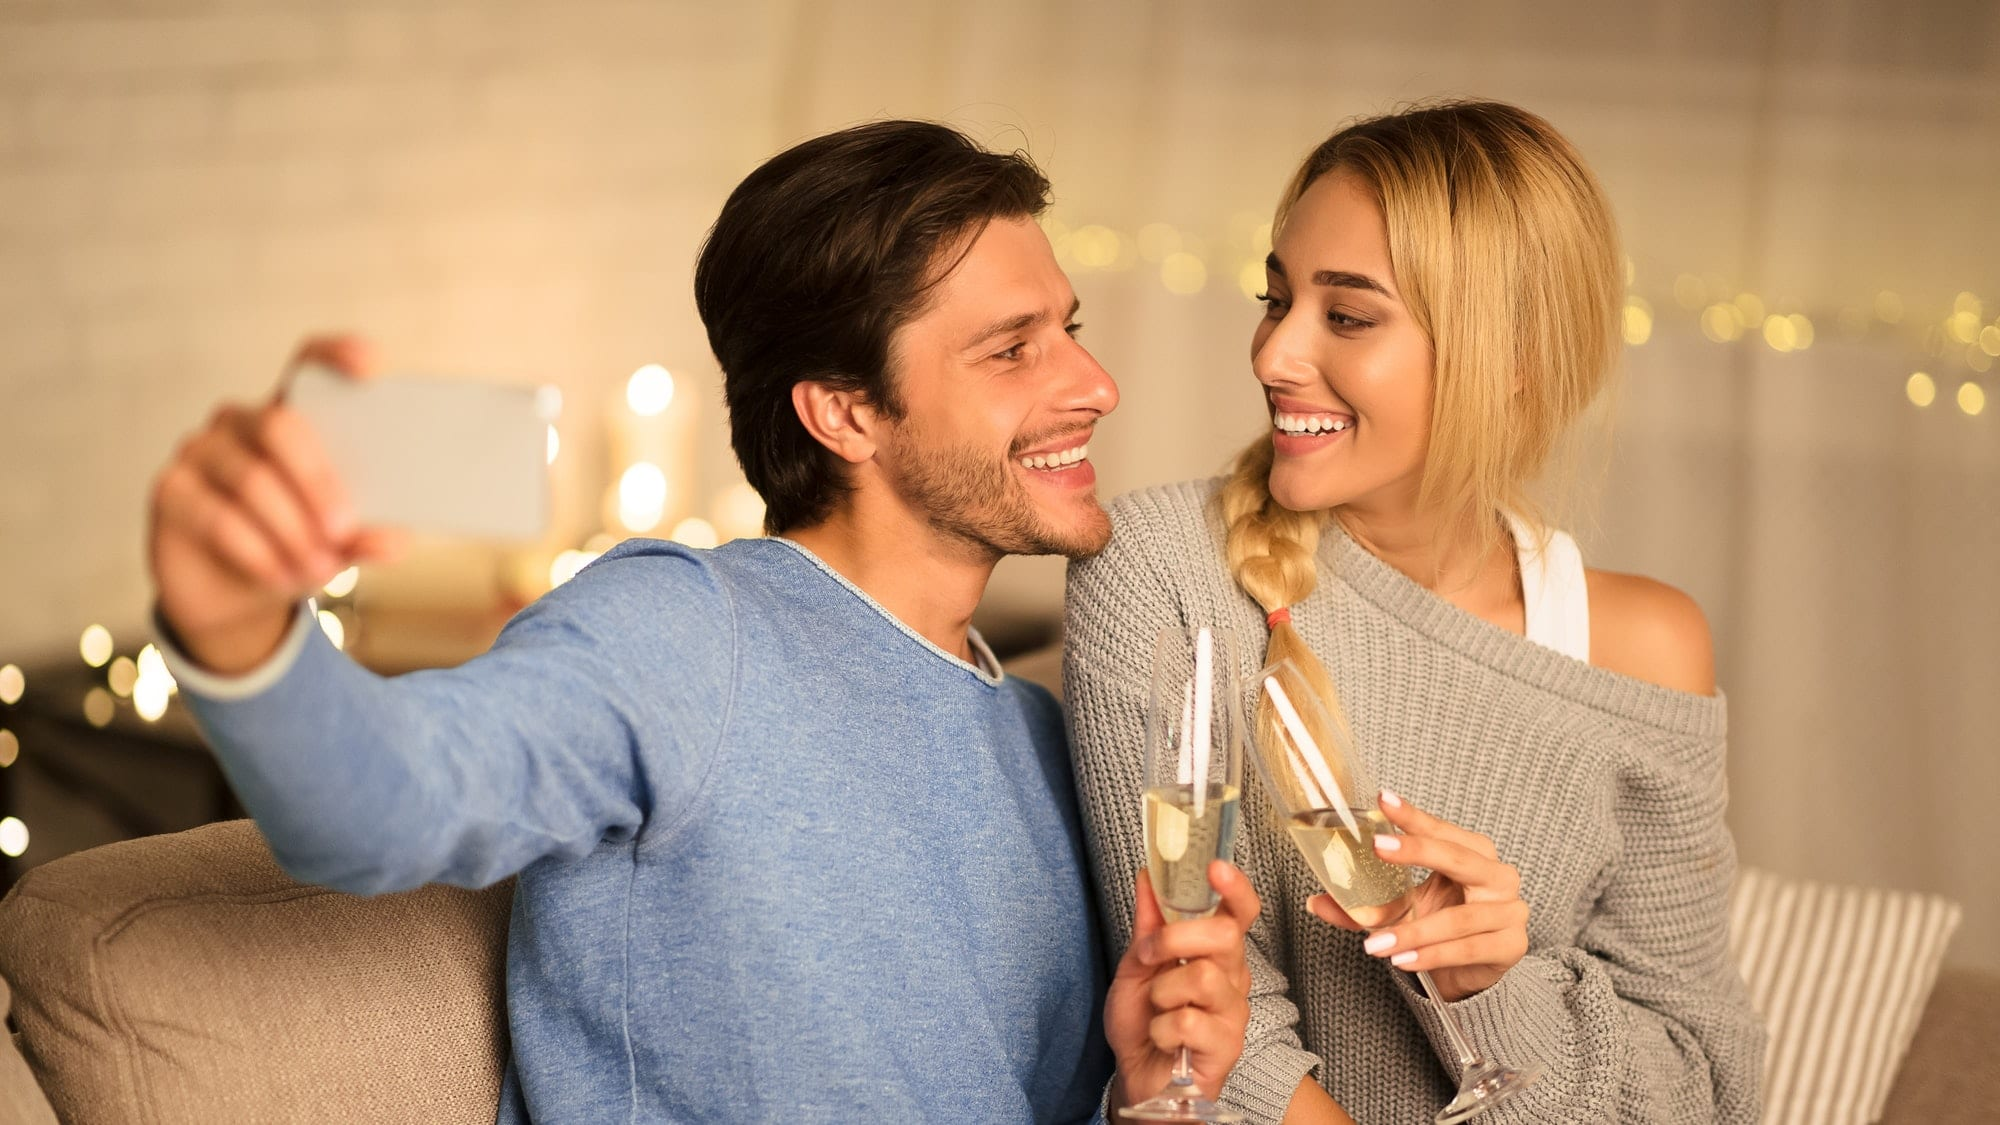 Young couple celebrating anniversary with champagne at home